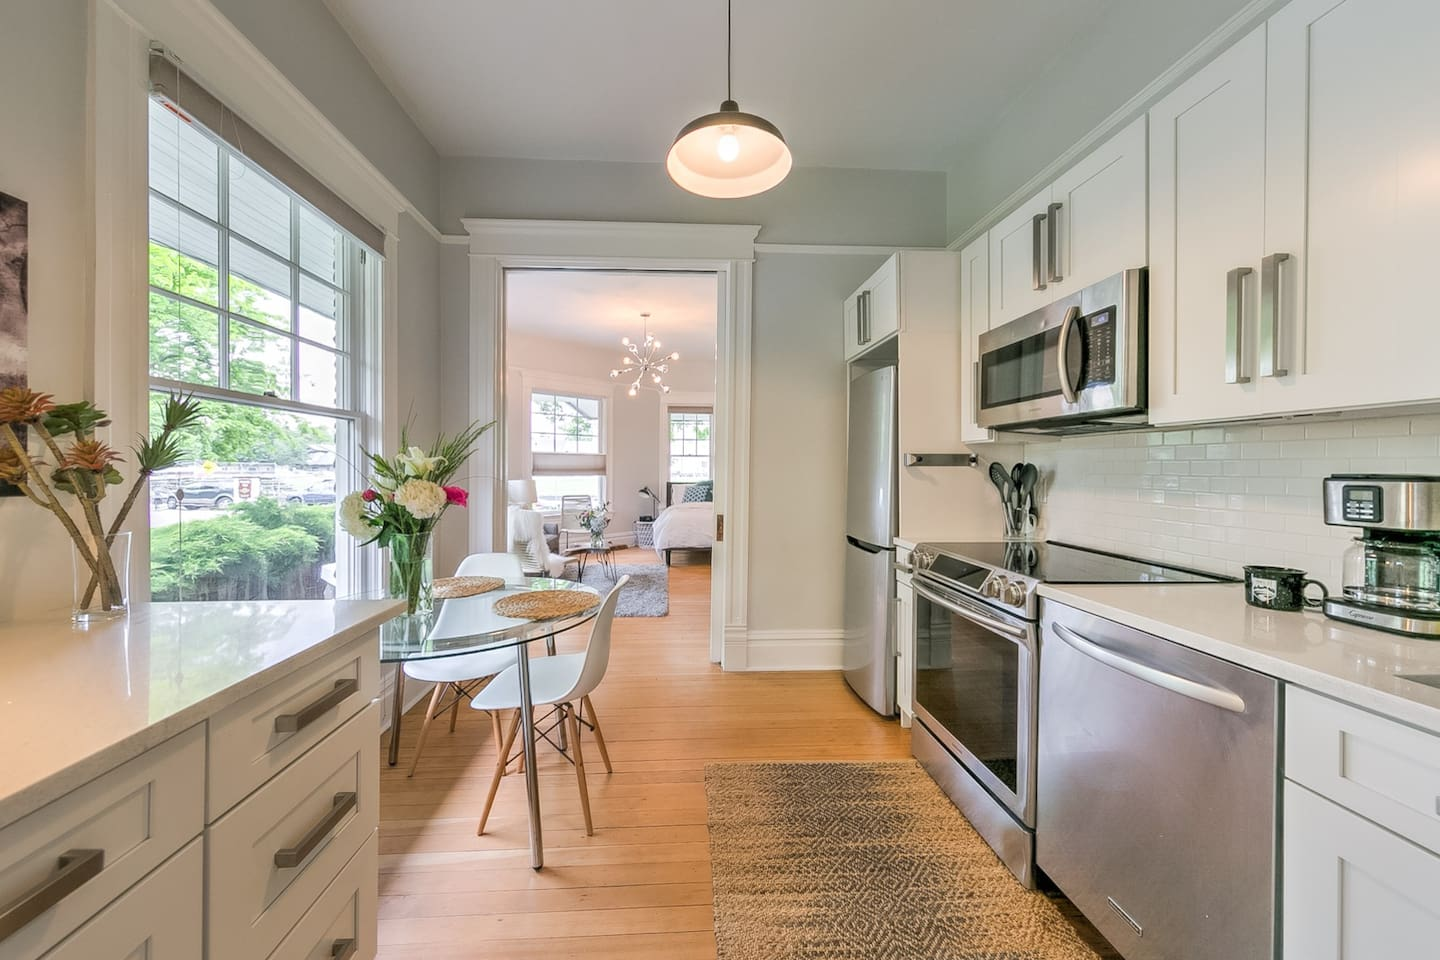 Light, airy 10' ceilings combining historic charm & modern renovation